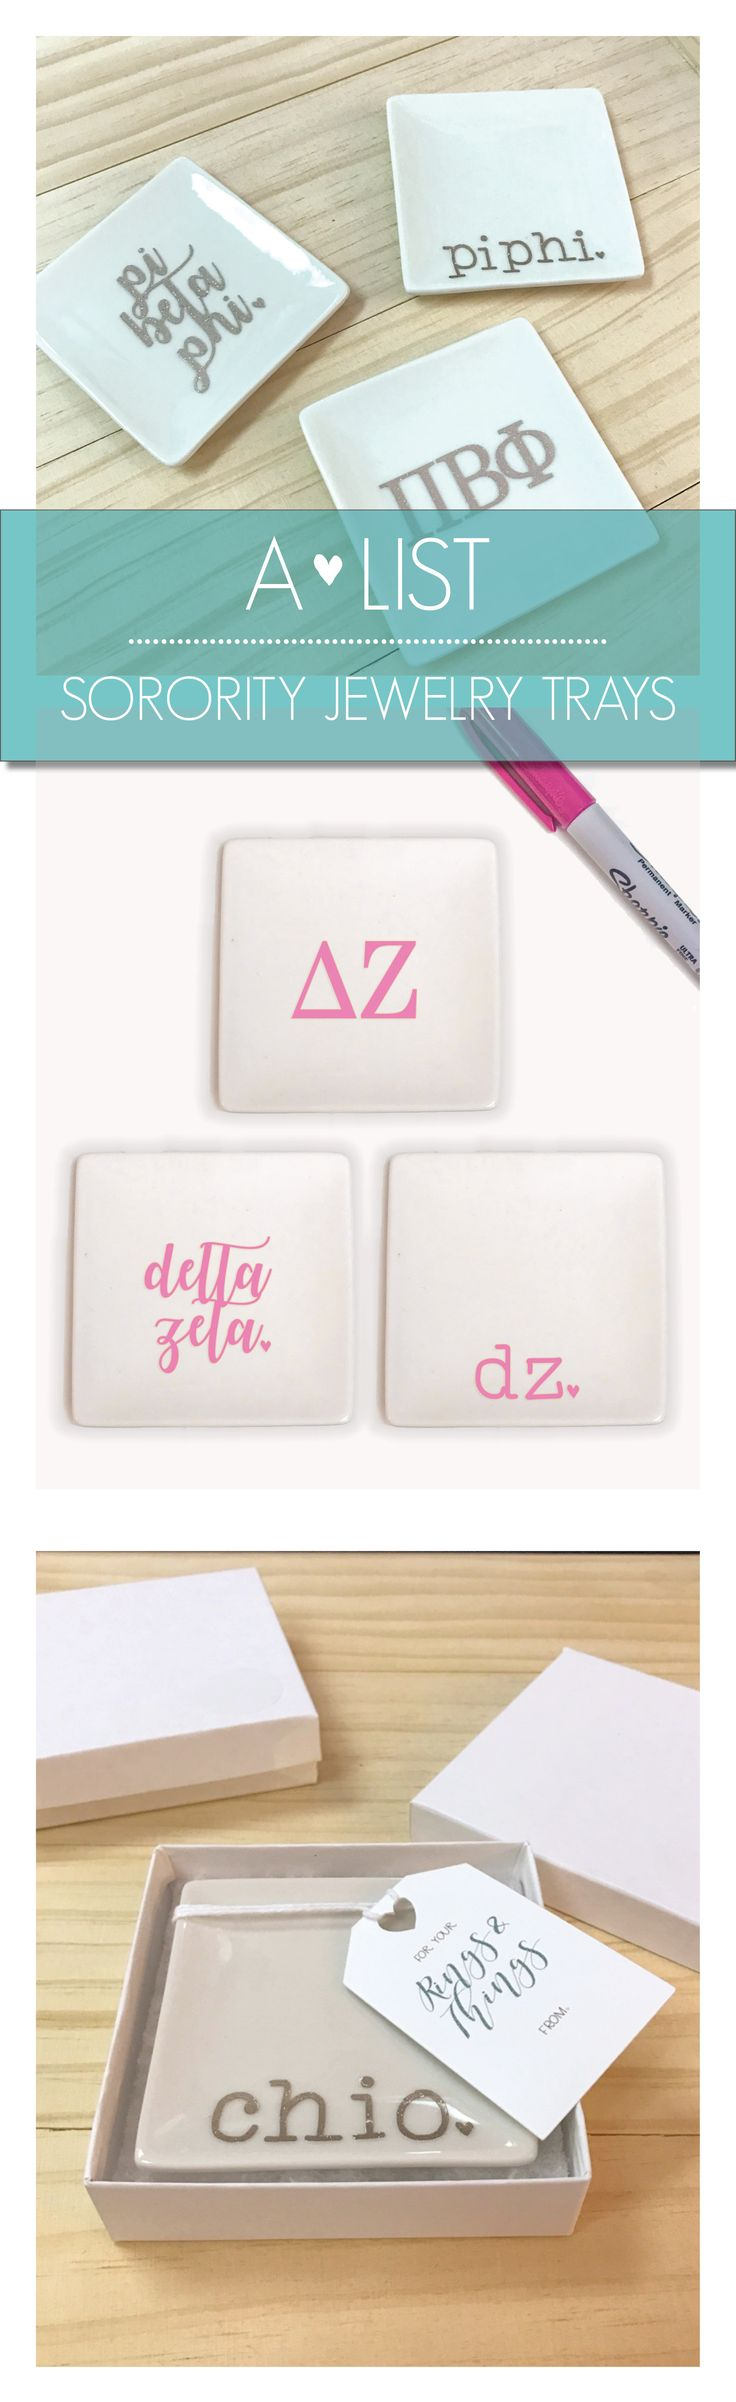 SET OF 3 Delta Zeta JEWELRY TRAYS Decorate your room with this adorable 3 piece set of 3″ x 3″ ceramic jewelry dishes. These simple white trays pop with your choice of color and our favorite sorority graphic designs. Use these for your jewelry, hair accessories, as a soap dish, as a dish for pins and clips on your desk, or a dish for any other trinkets you can think of!